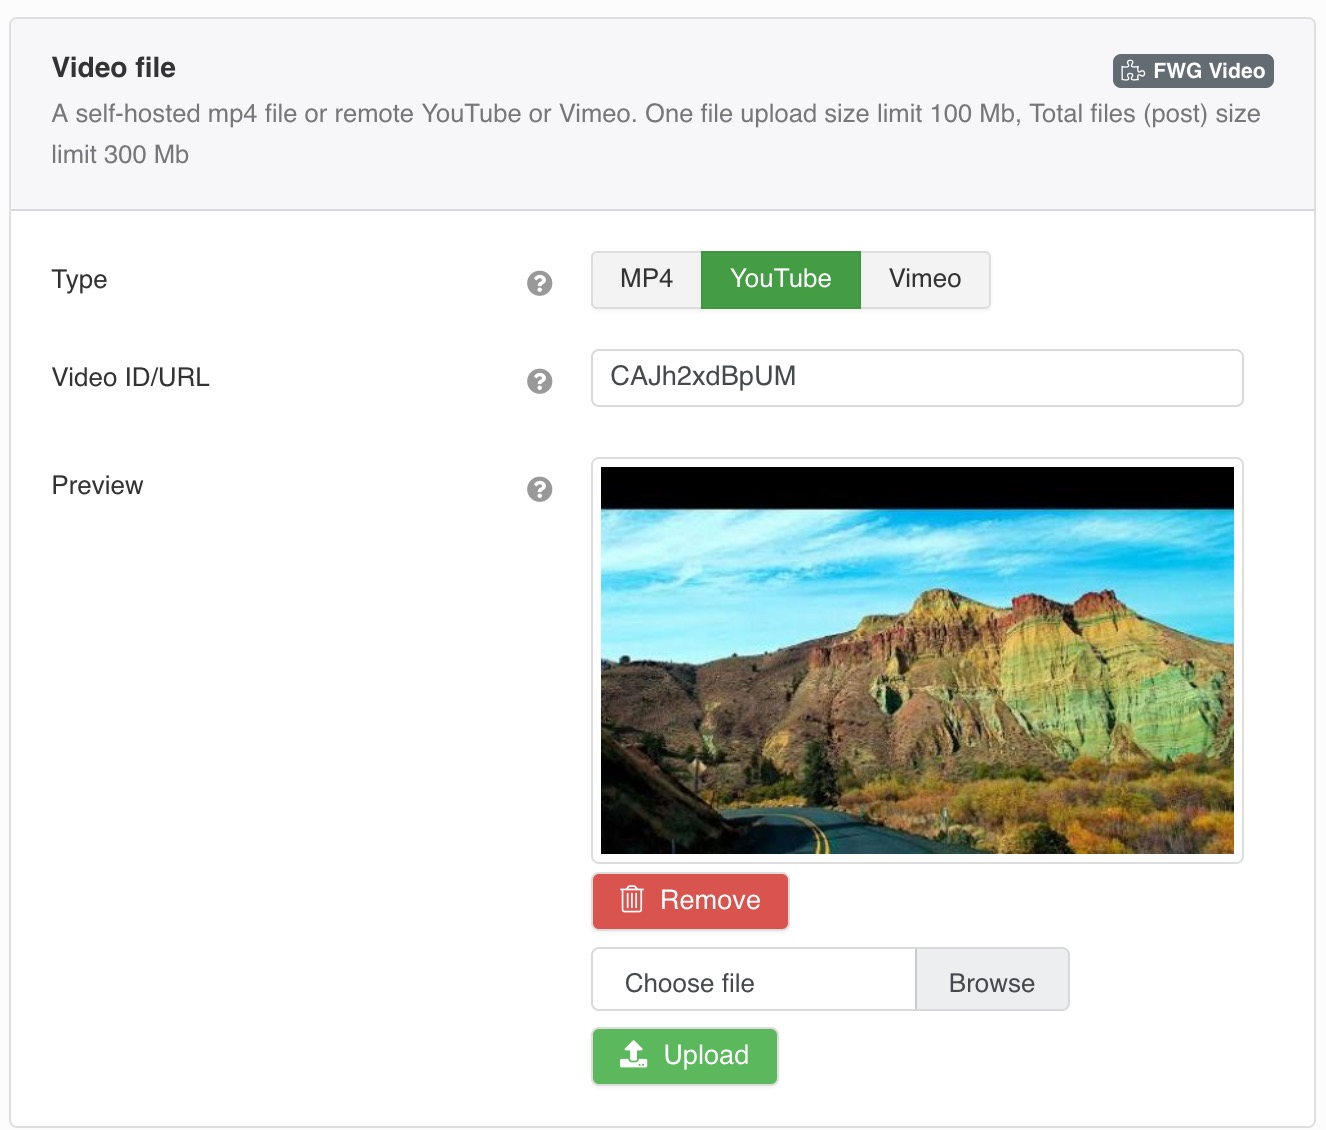 A self-hosted mp4 file or remote YouTube or Vimeo.